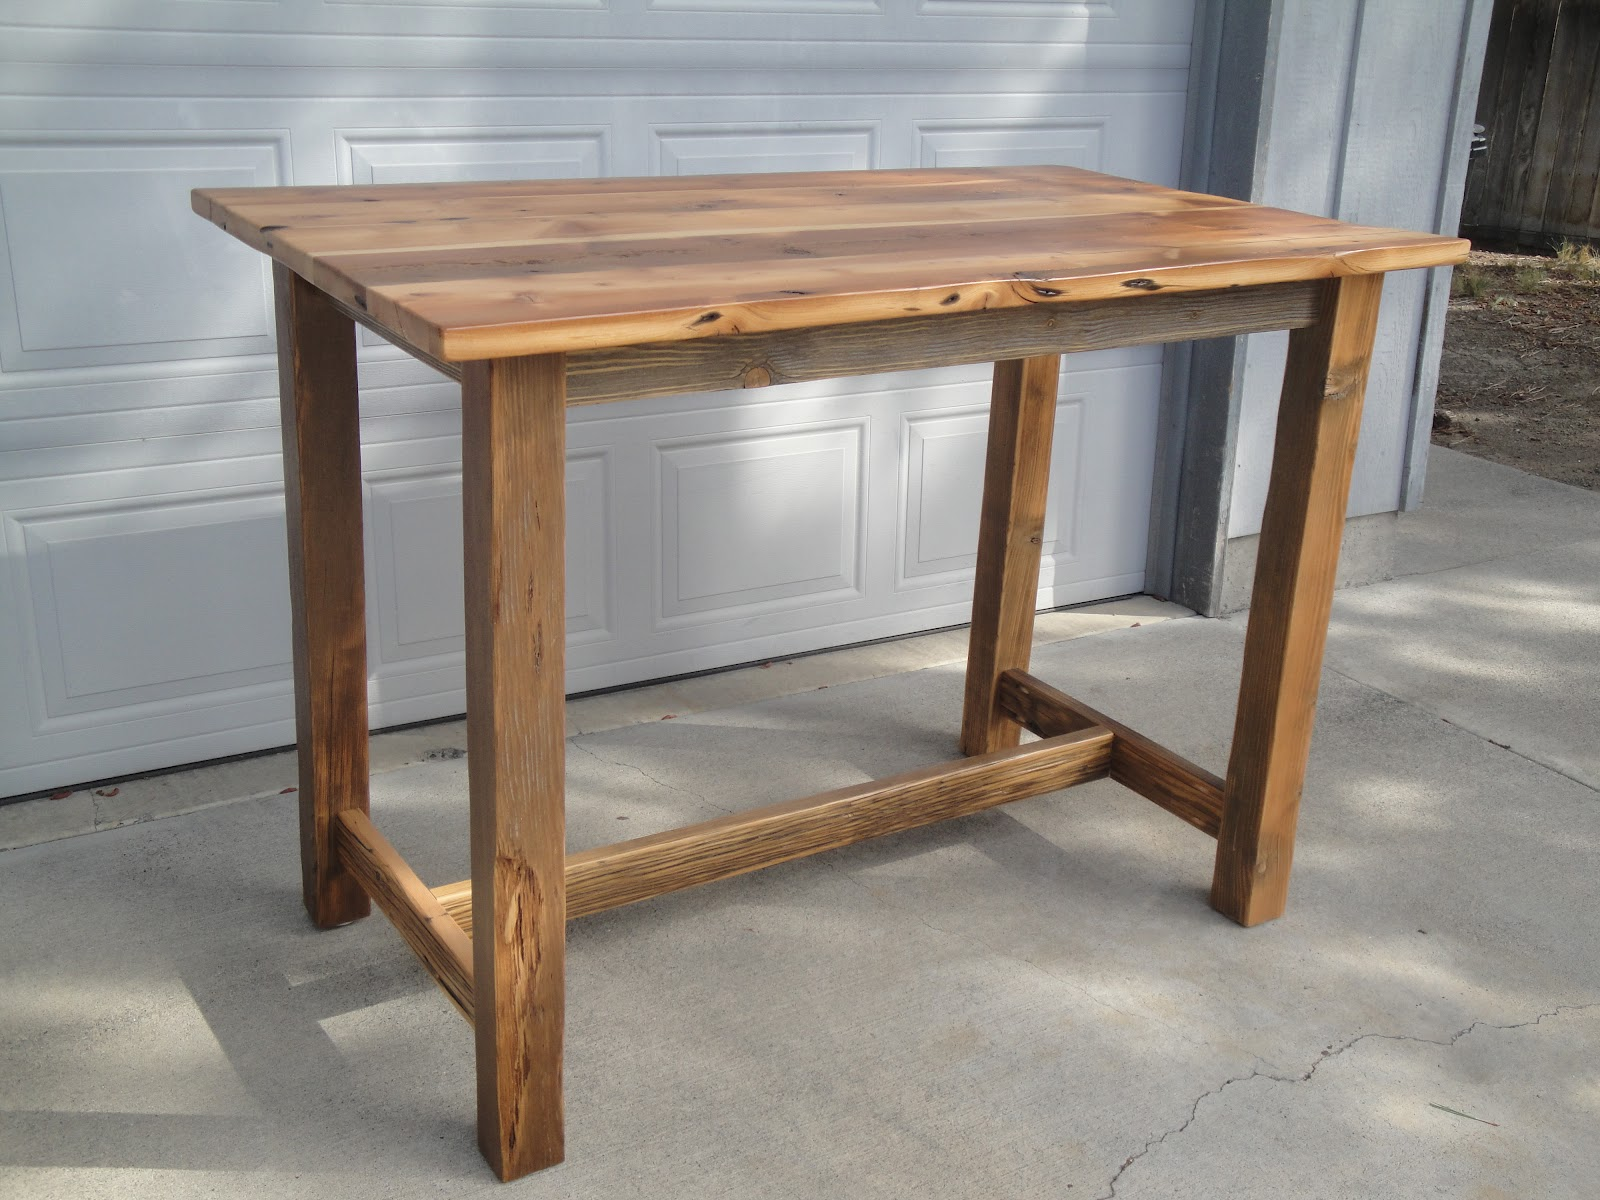 Carlseng Designs: Reclaimed Wood Table